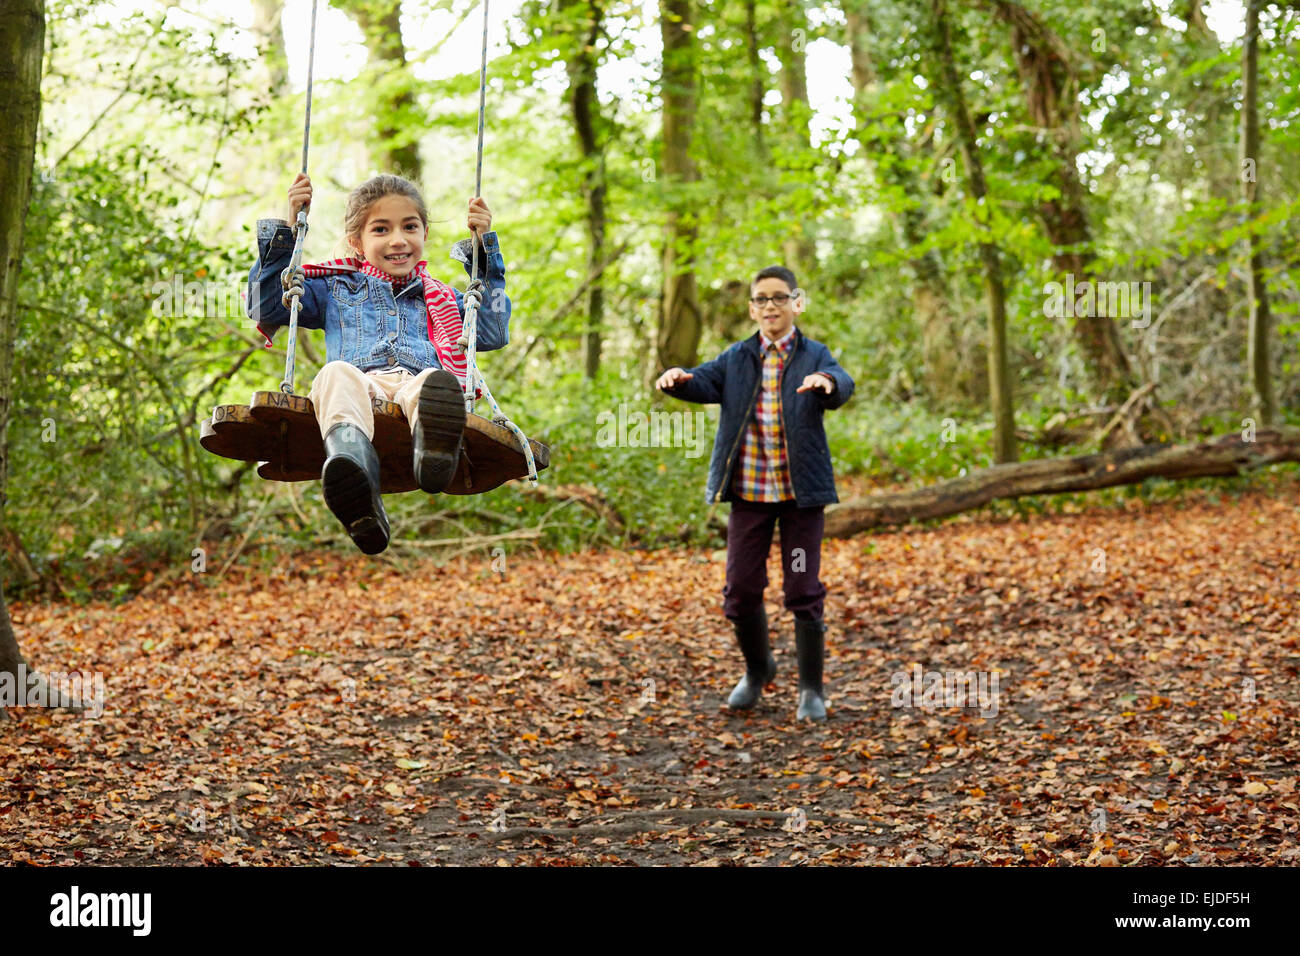 Beech woods in Autumn. A girl sitting on a swing being pushed by her brother. - Stock Image